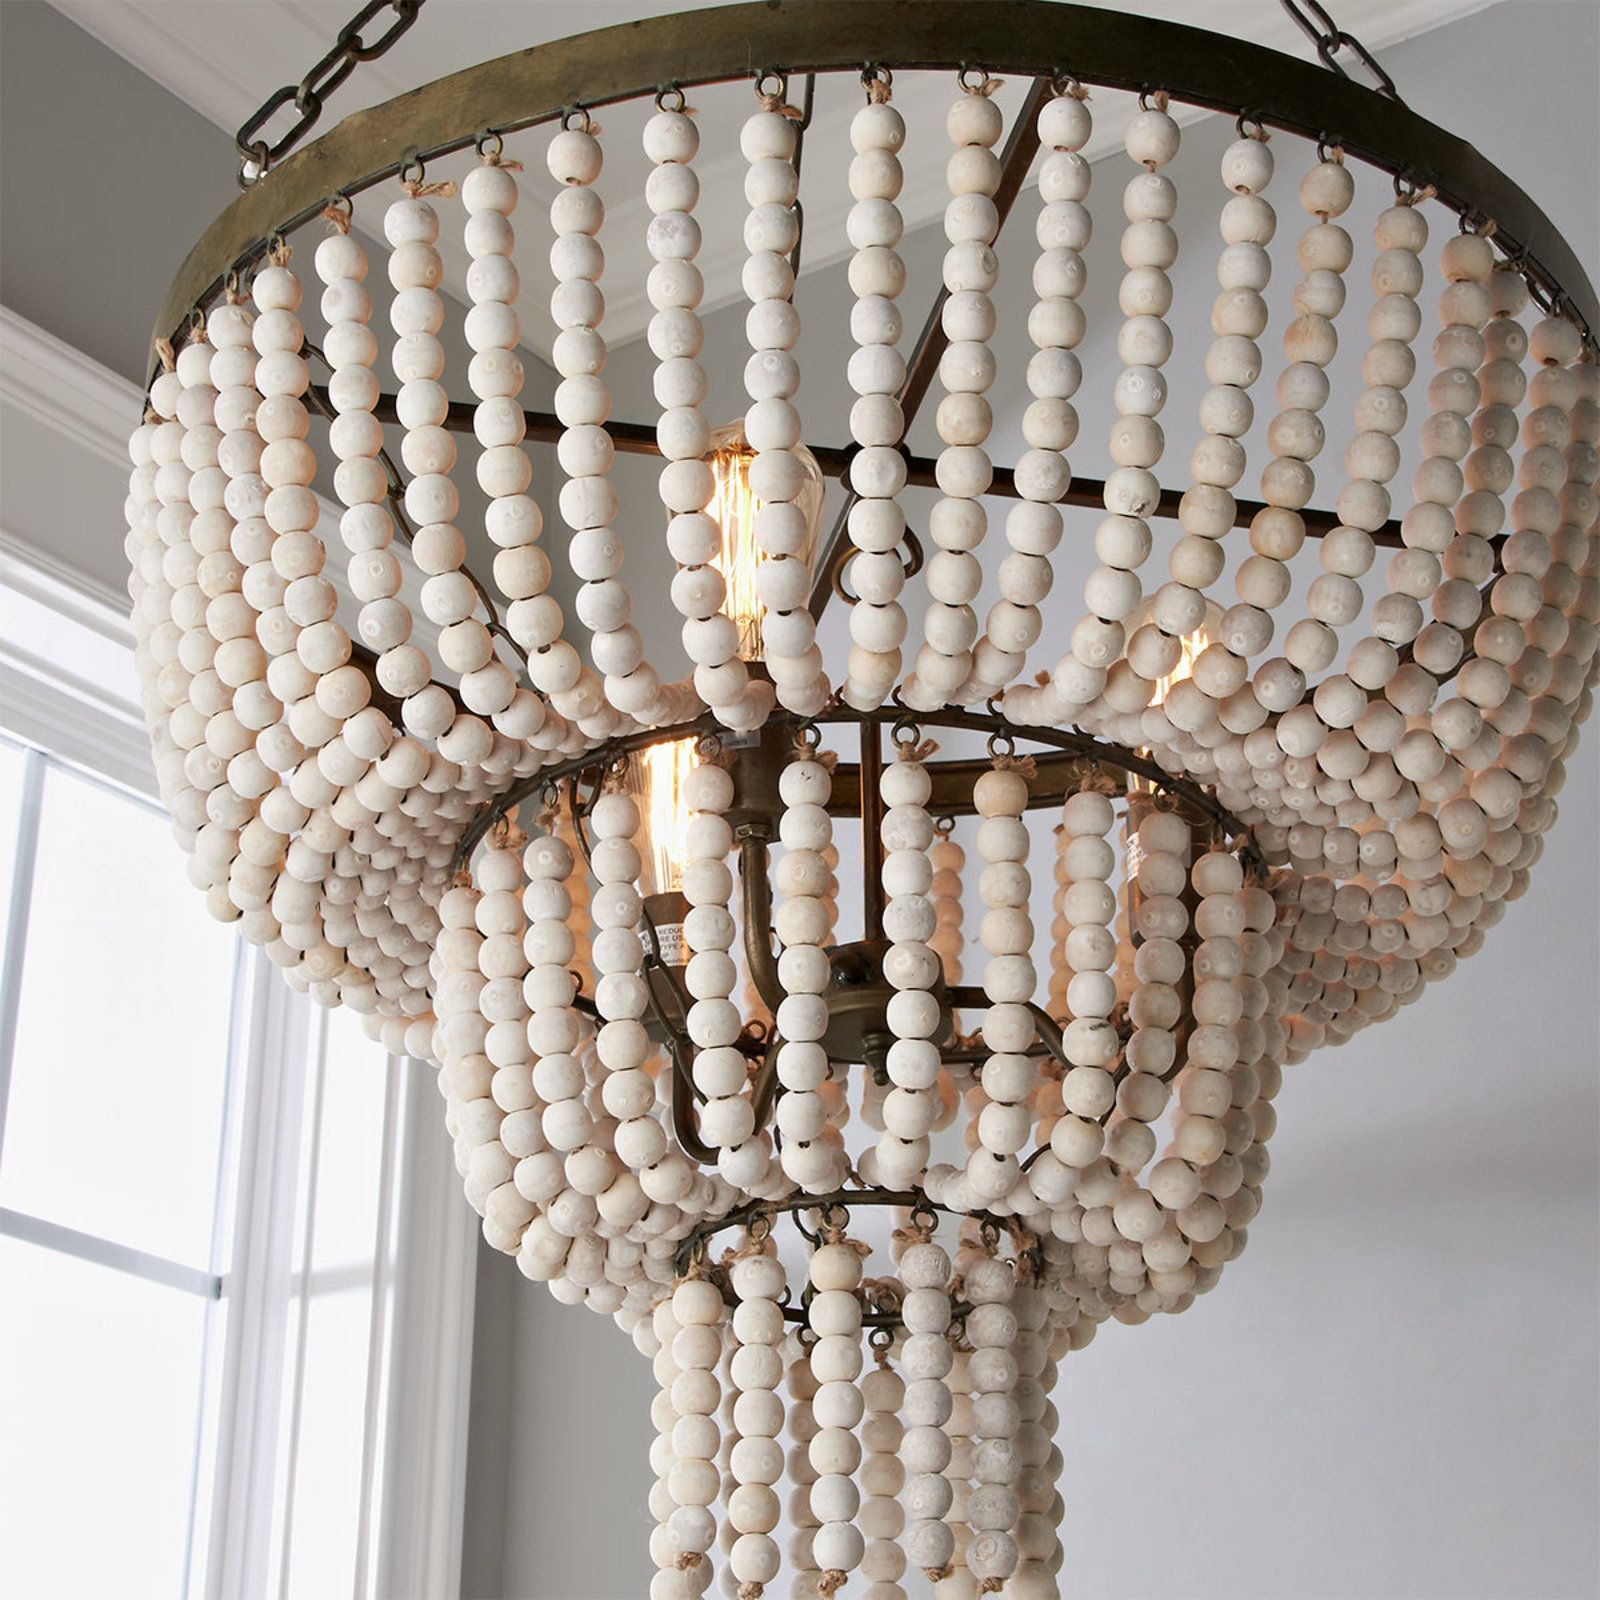 Tiered Basket Bead Chandelier Wood Bead Chandelier Beaded Light